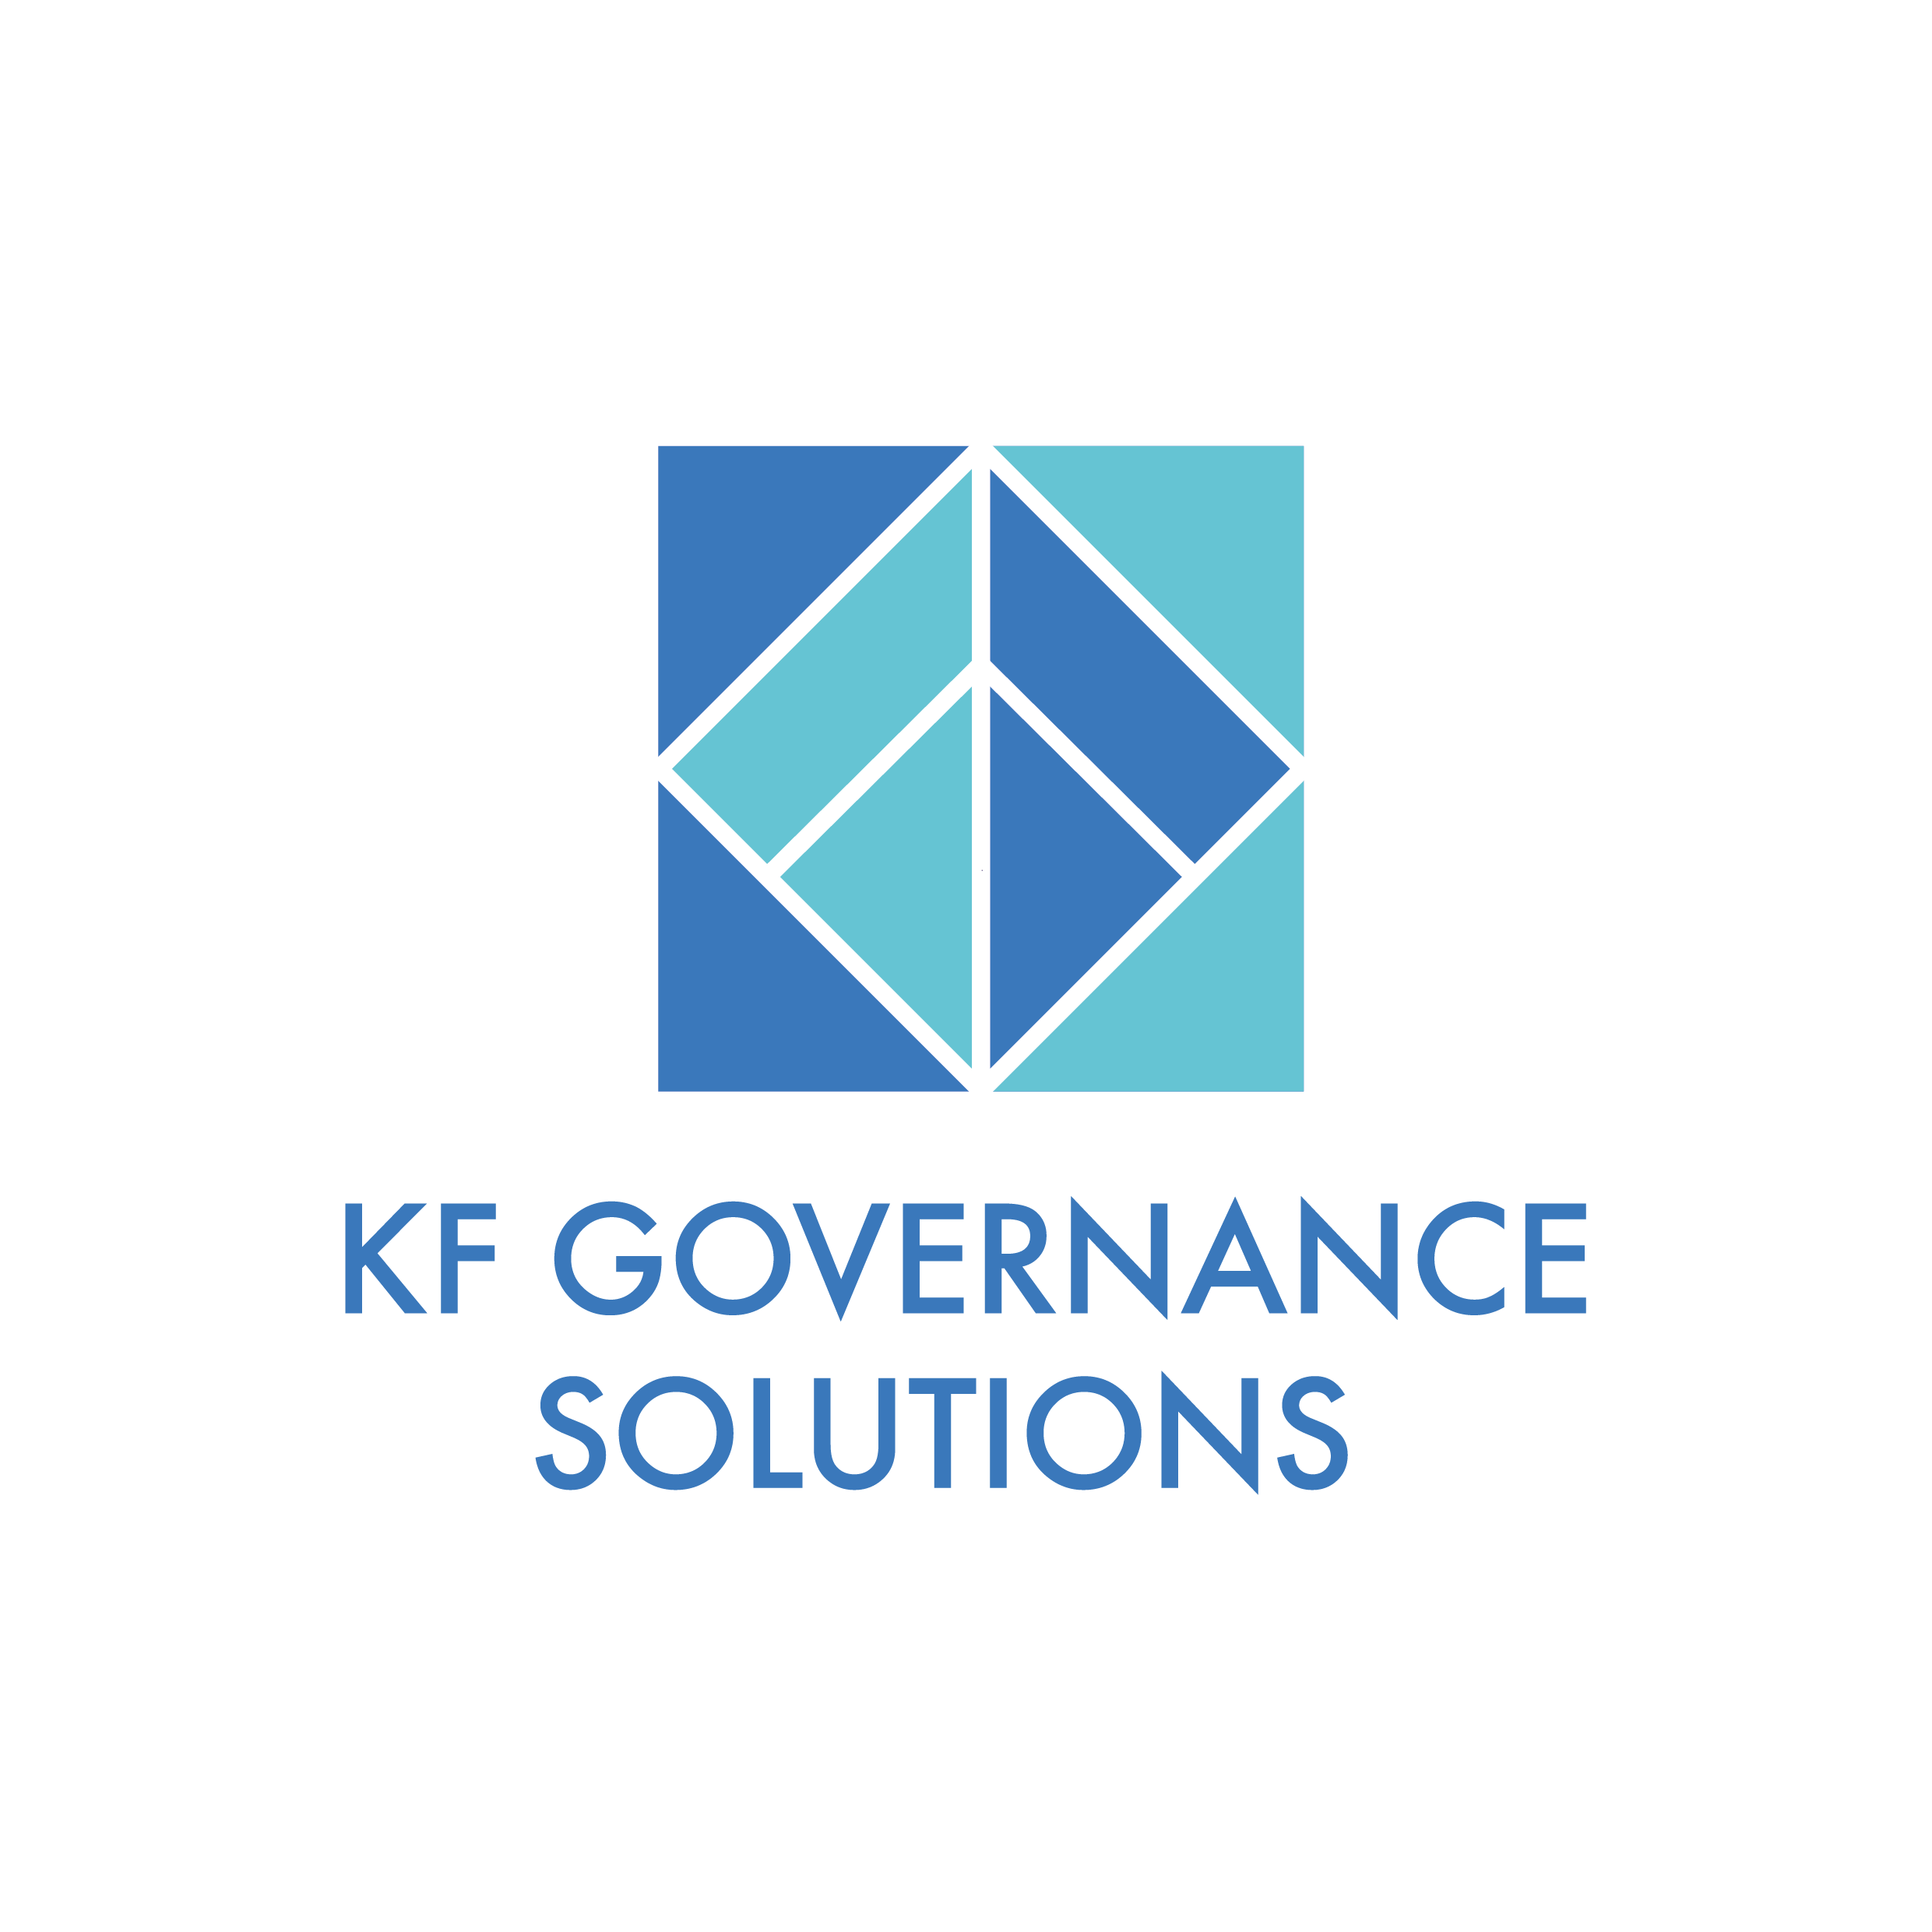 KFGovernanceSolutions